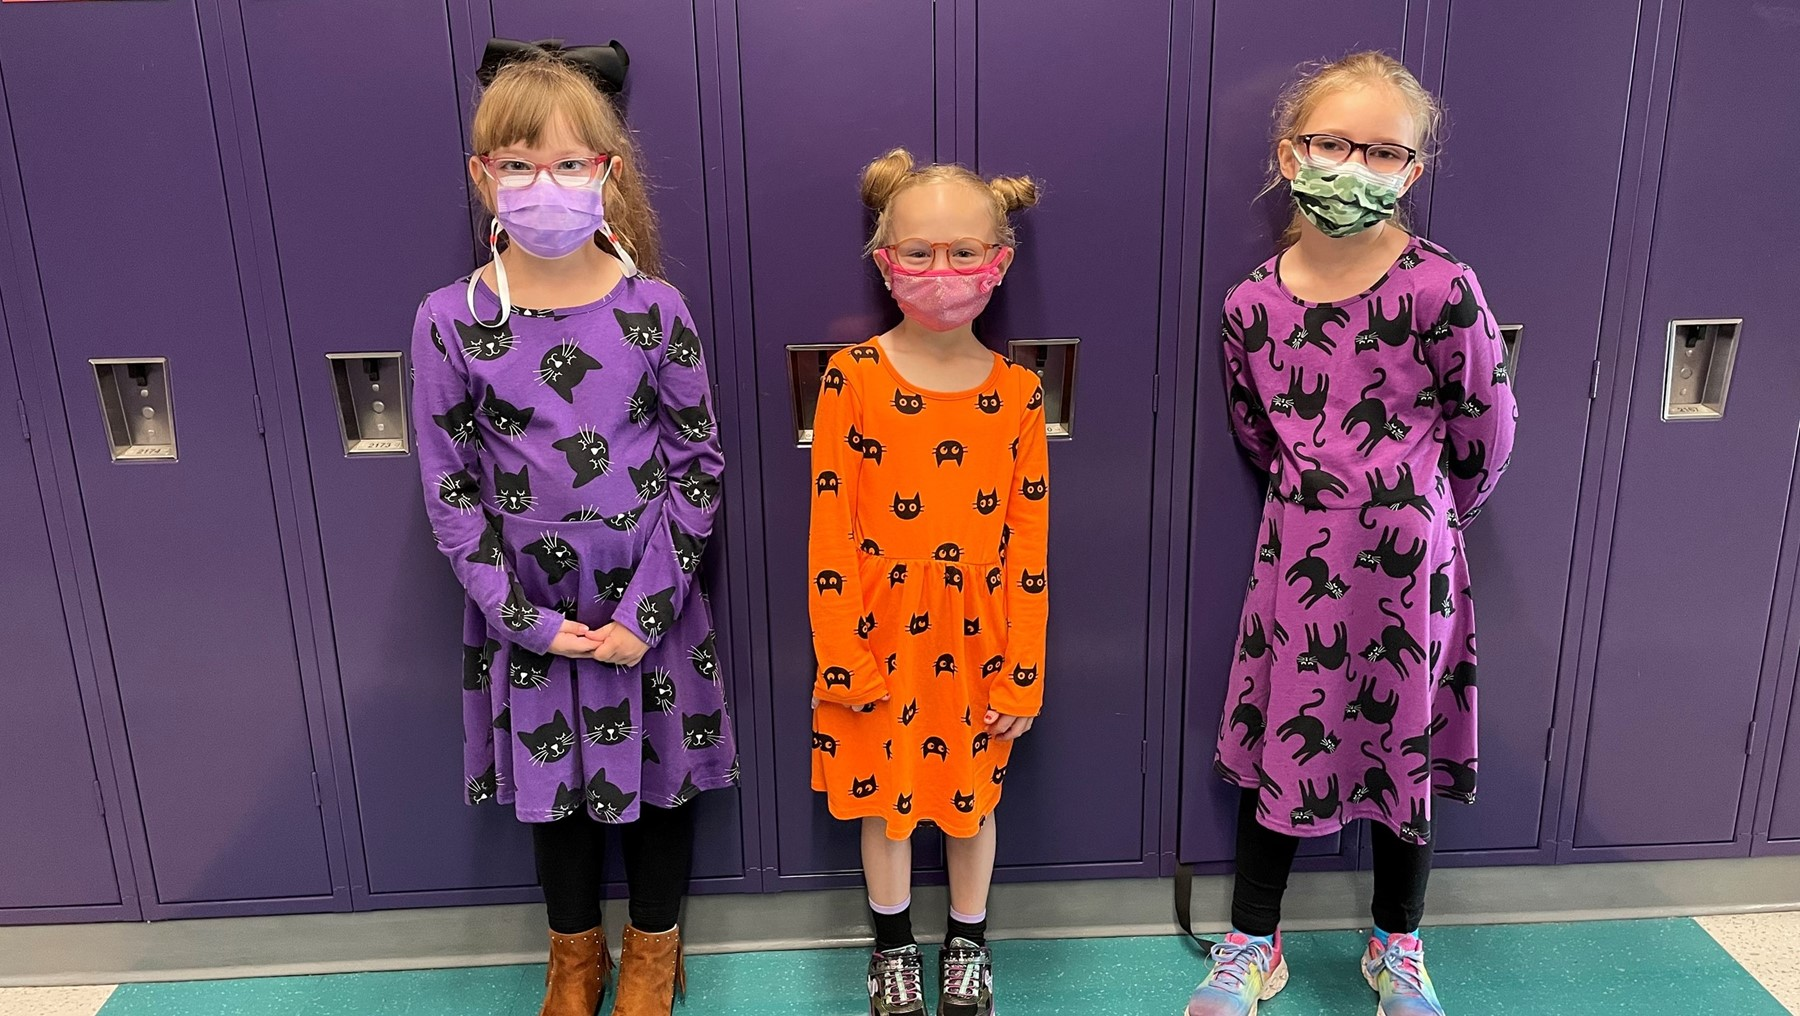 Fall Triplets from Mrs. Soltis's 2nd grade class!